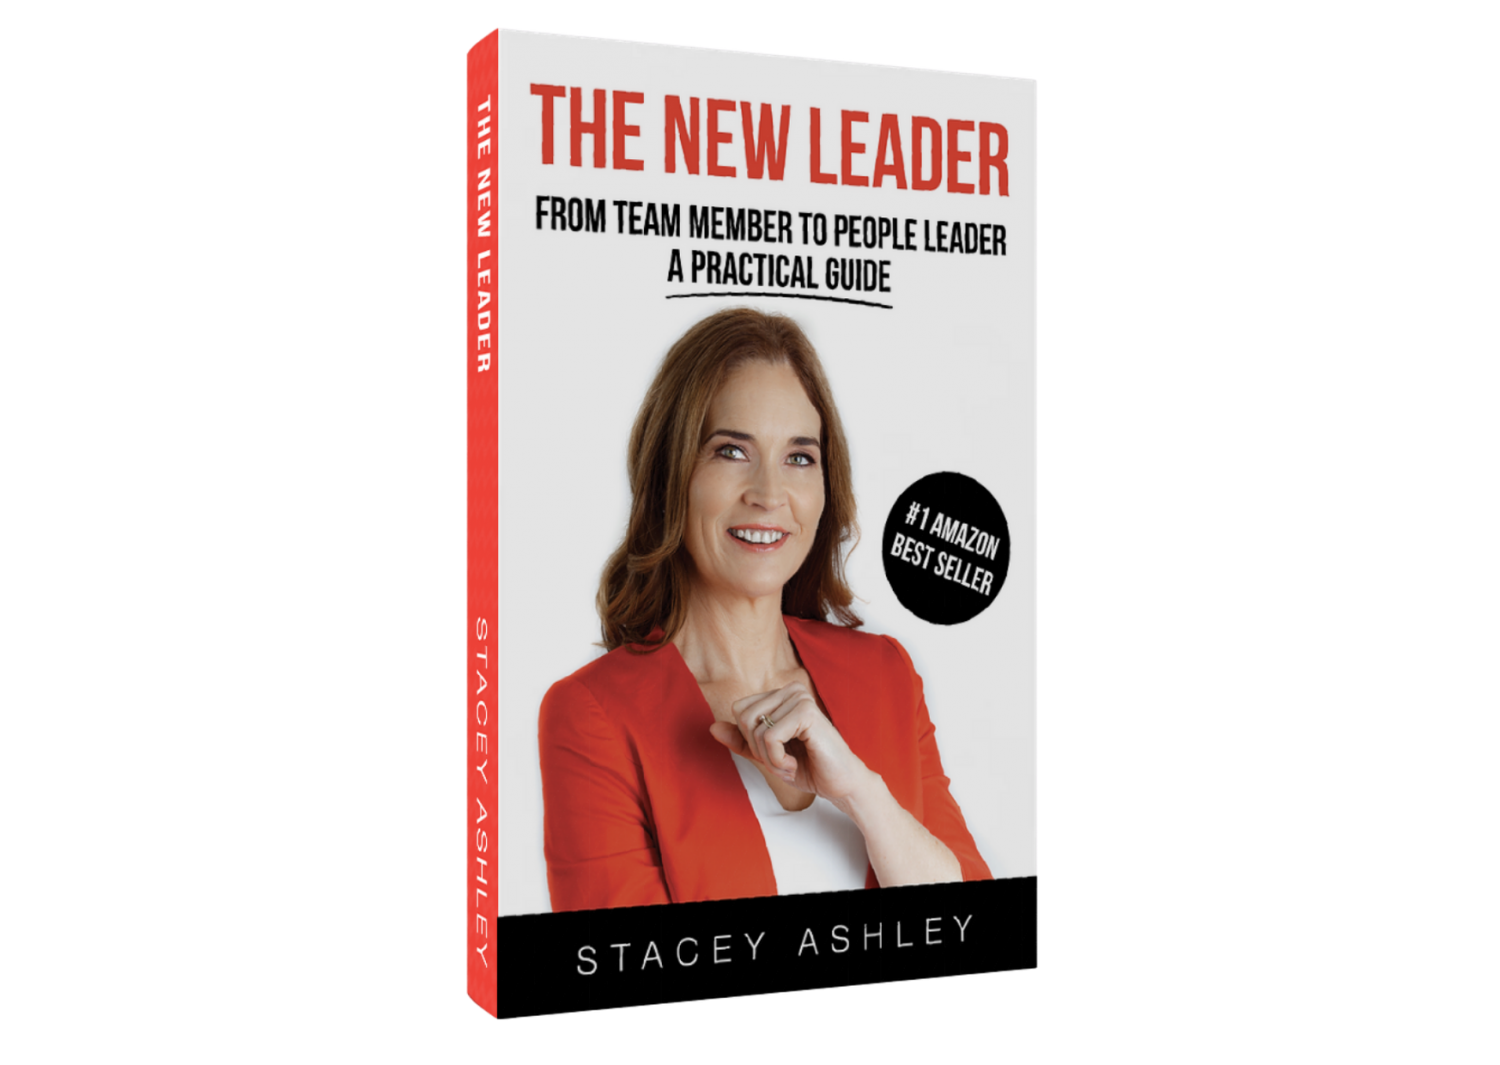 The New Leader - book by Stacey Ashley